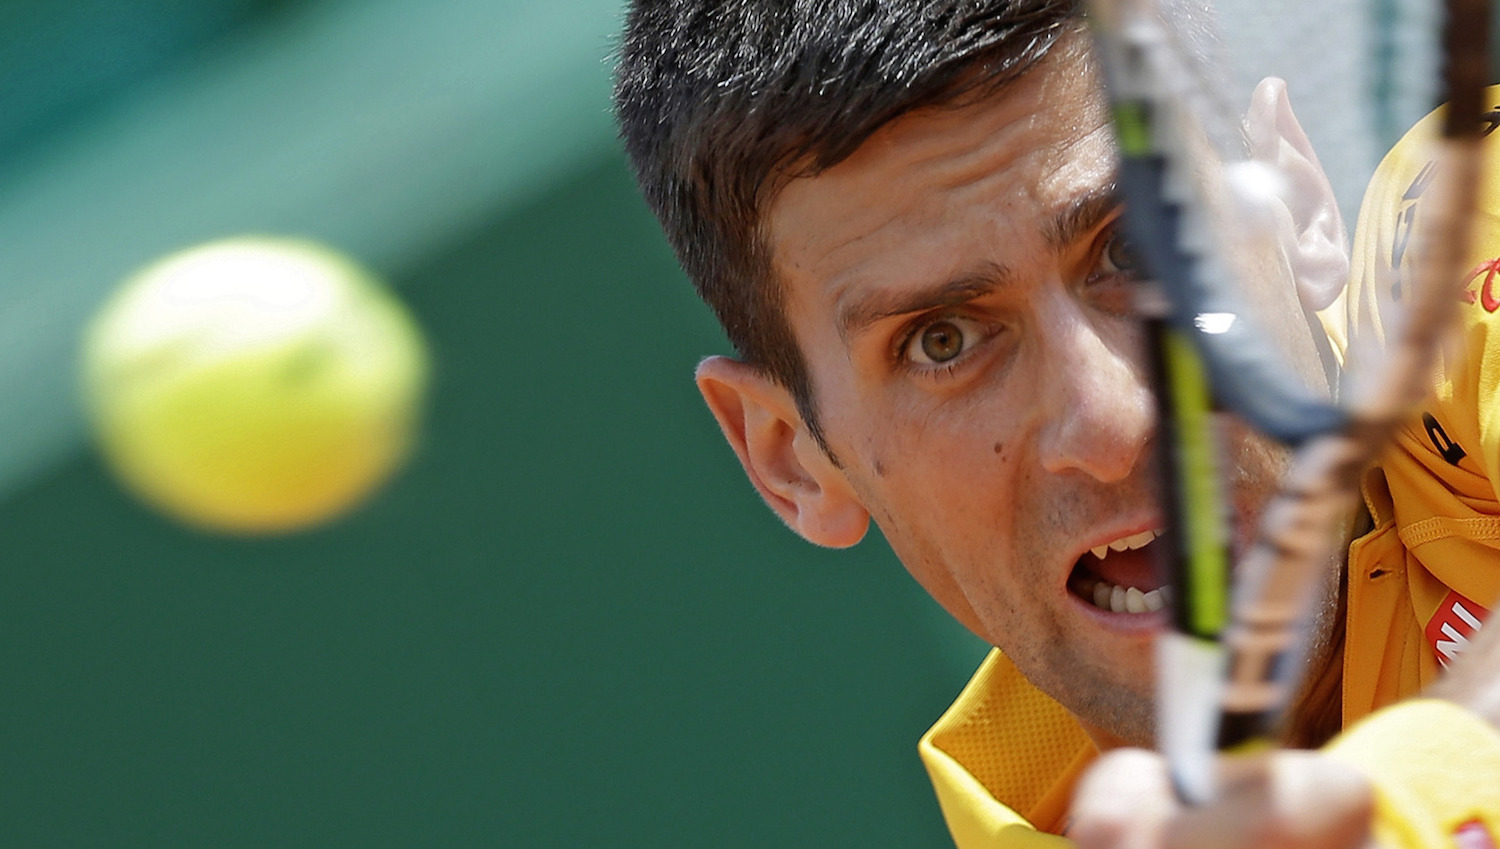 Novak Djokovic wins in Monte-Carlo!